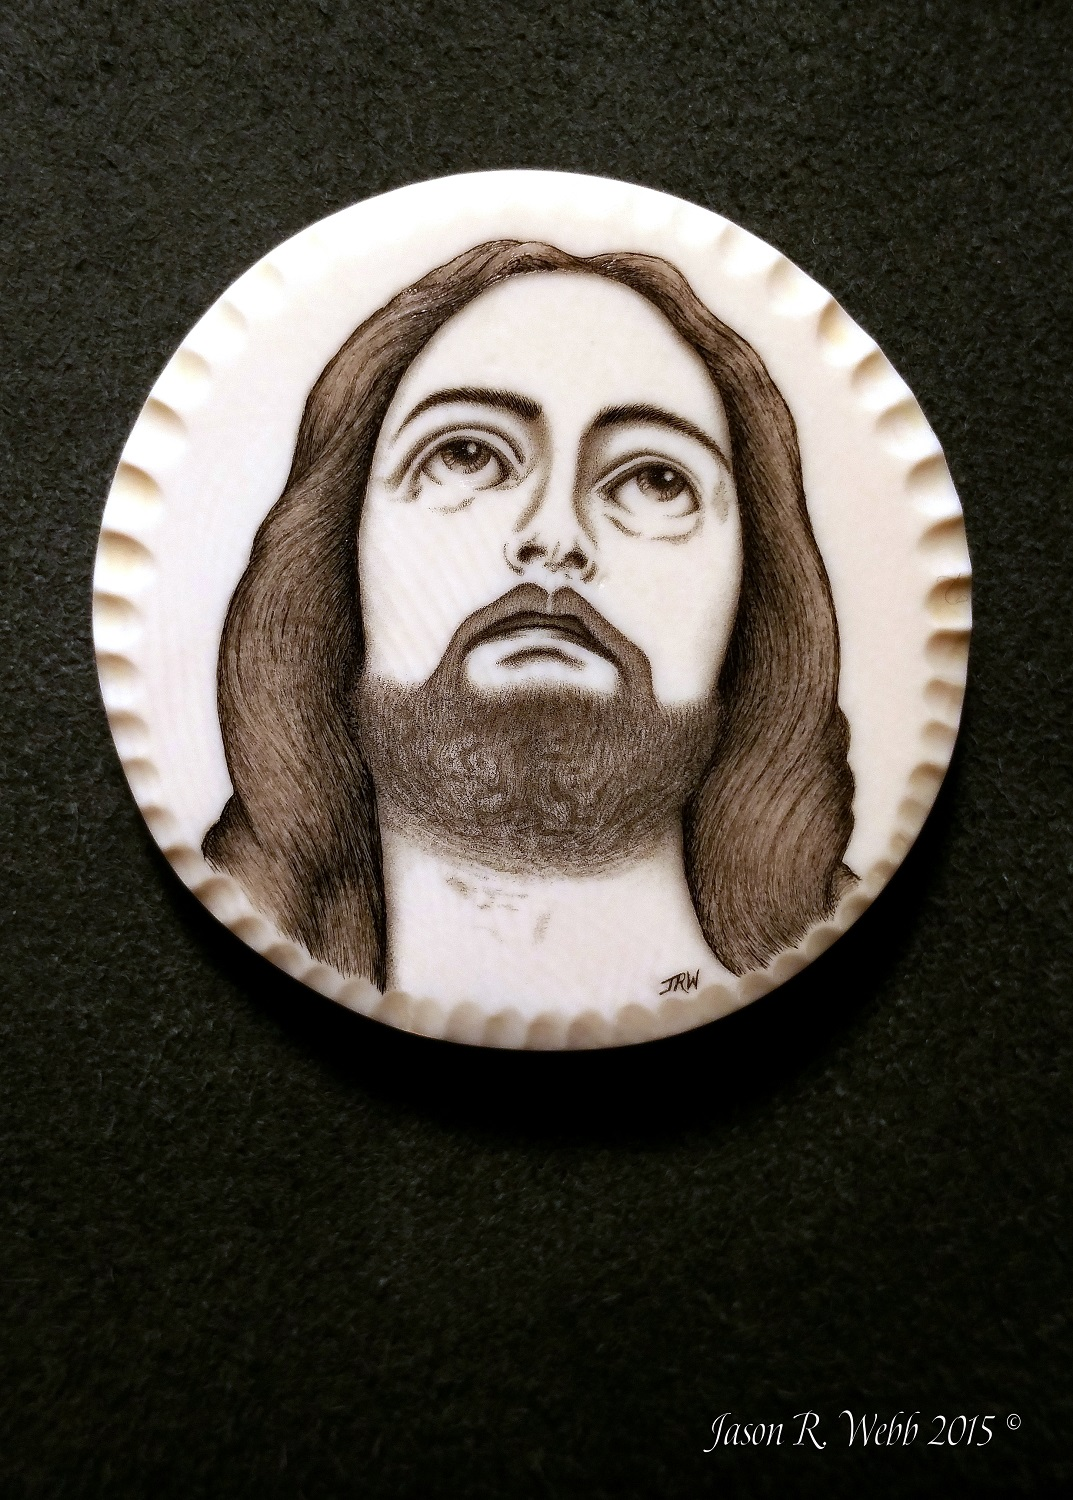 Jesus Christ portrait by Jason R. Webb